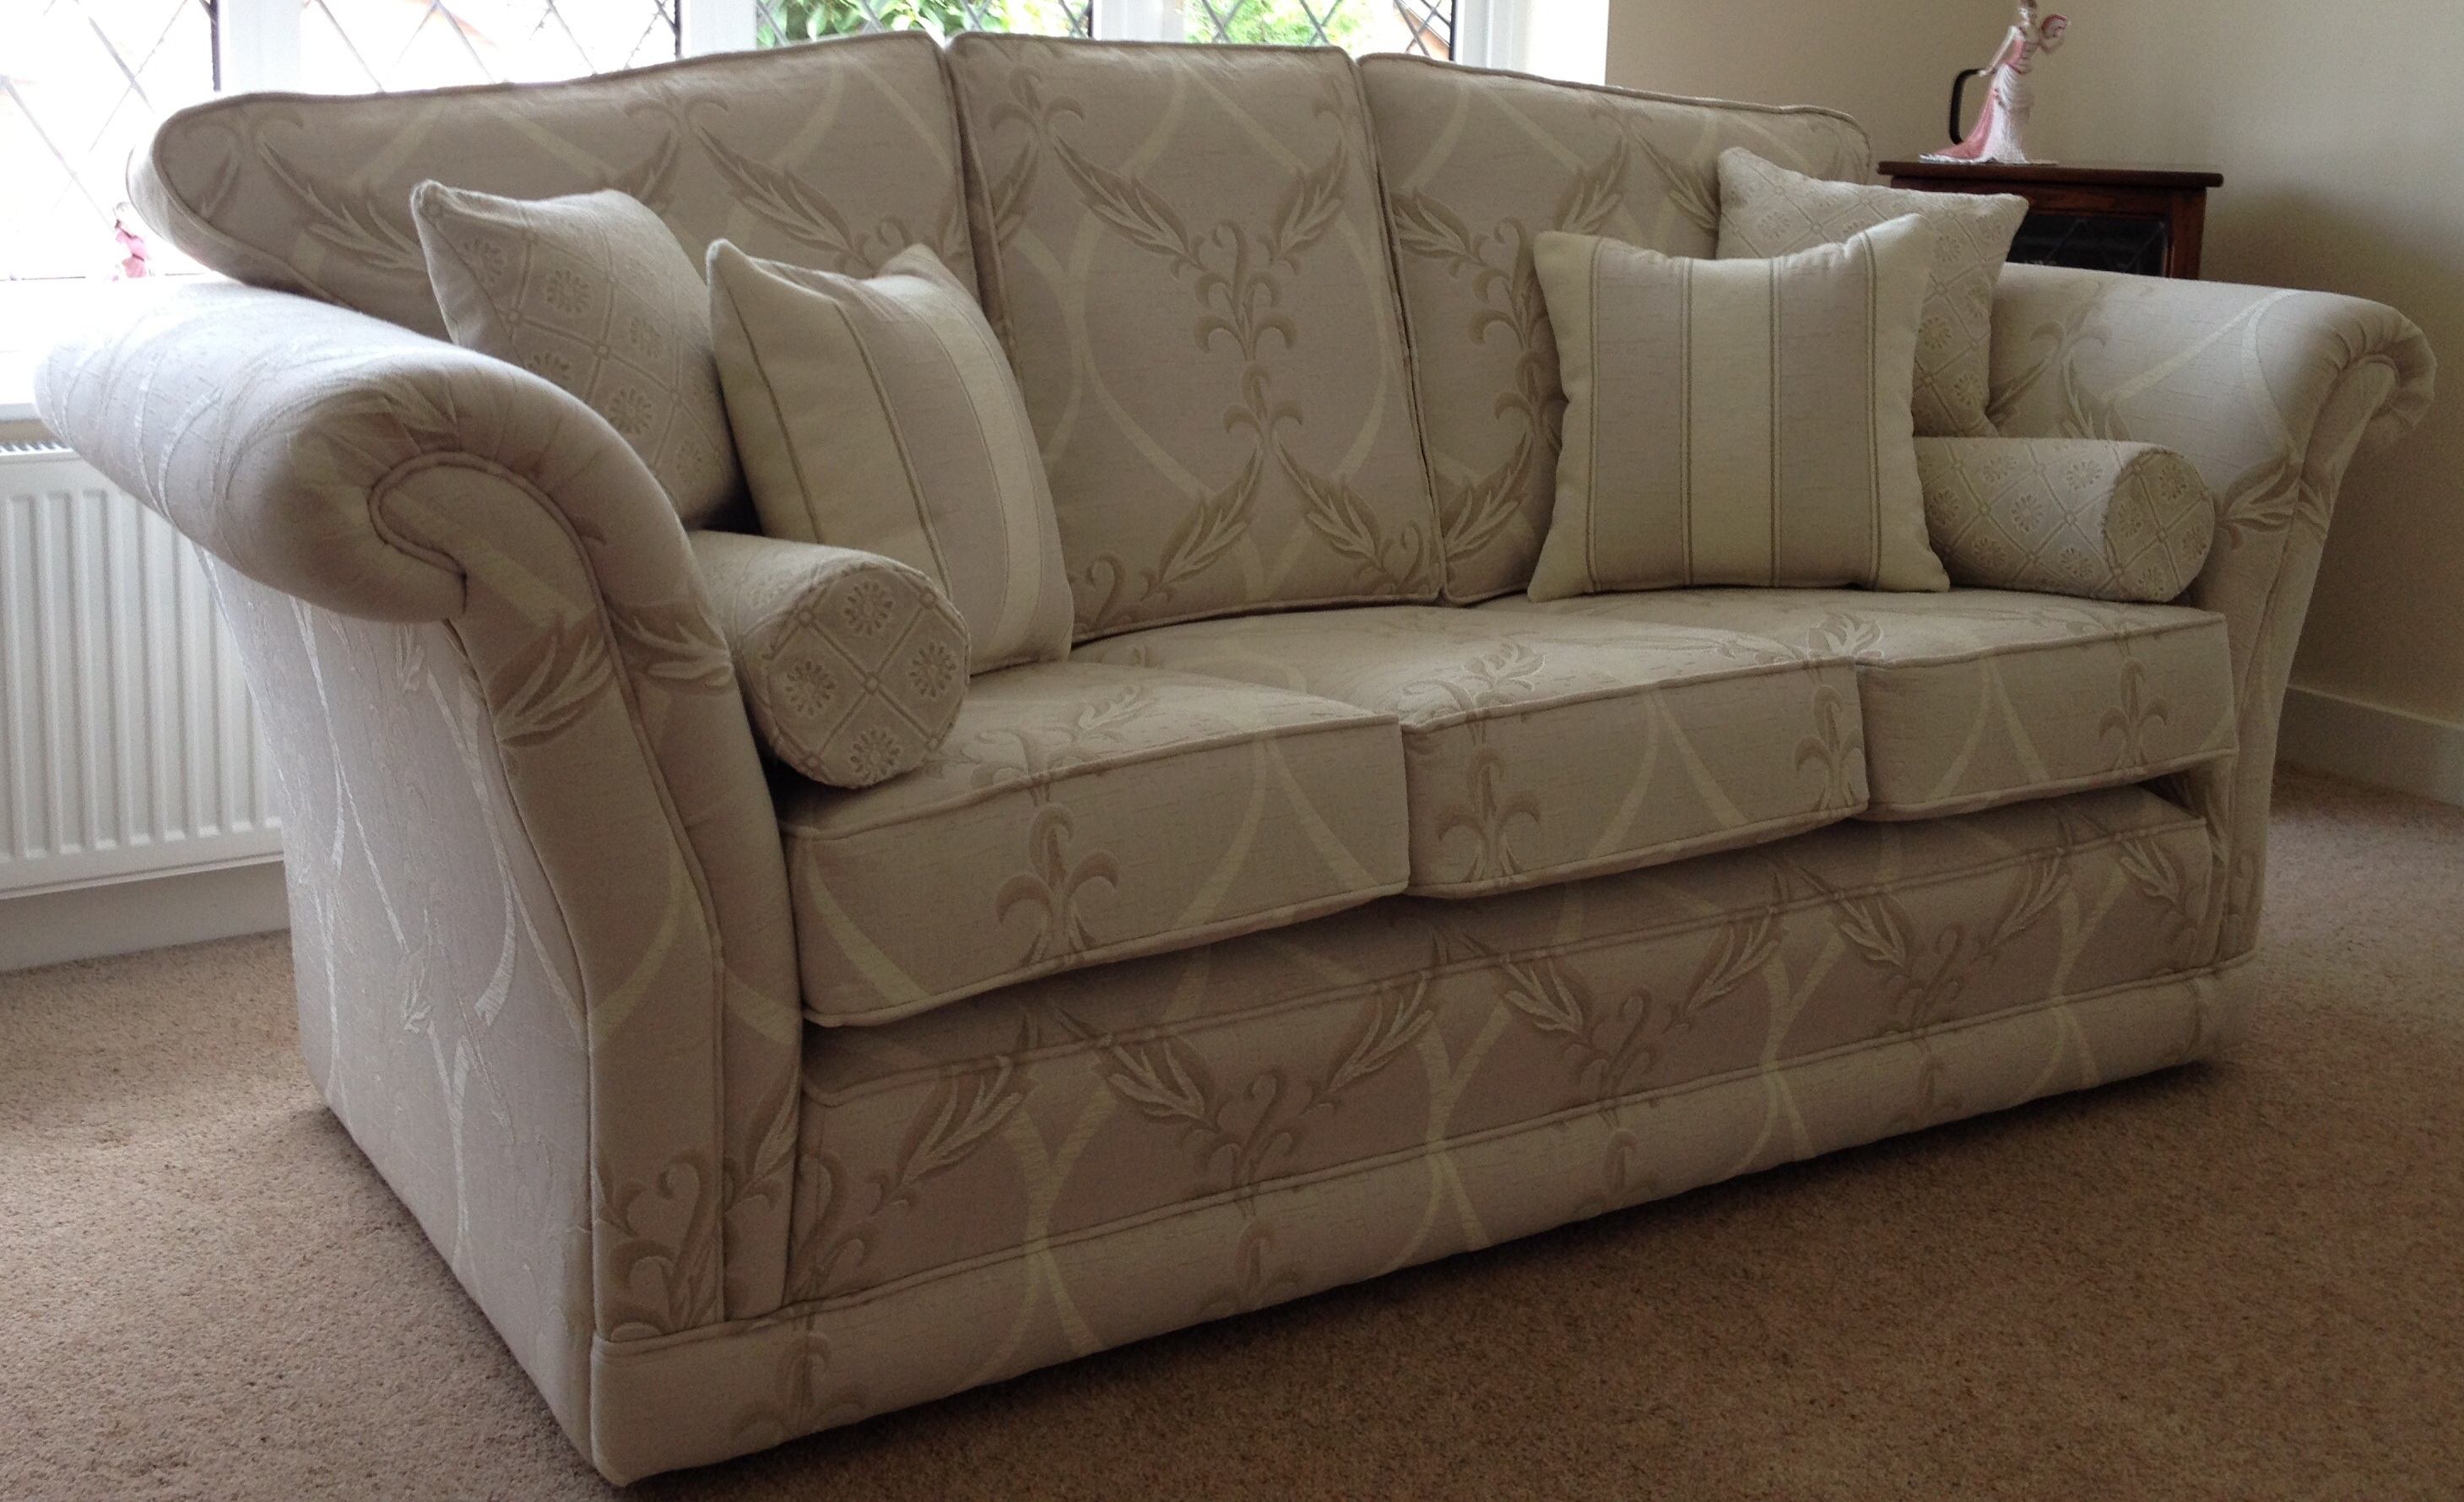 The Empress Design by Ralvern Upholstery Three Seater Sofa